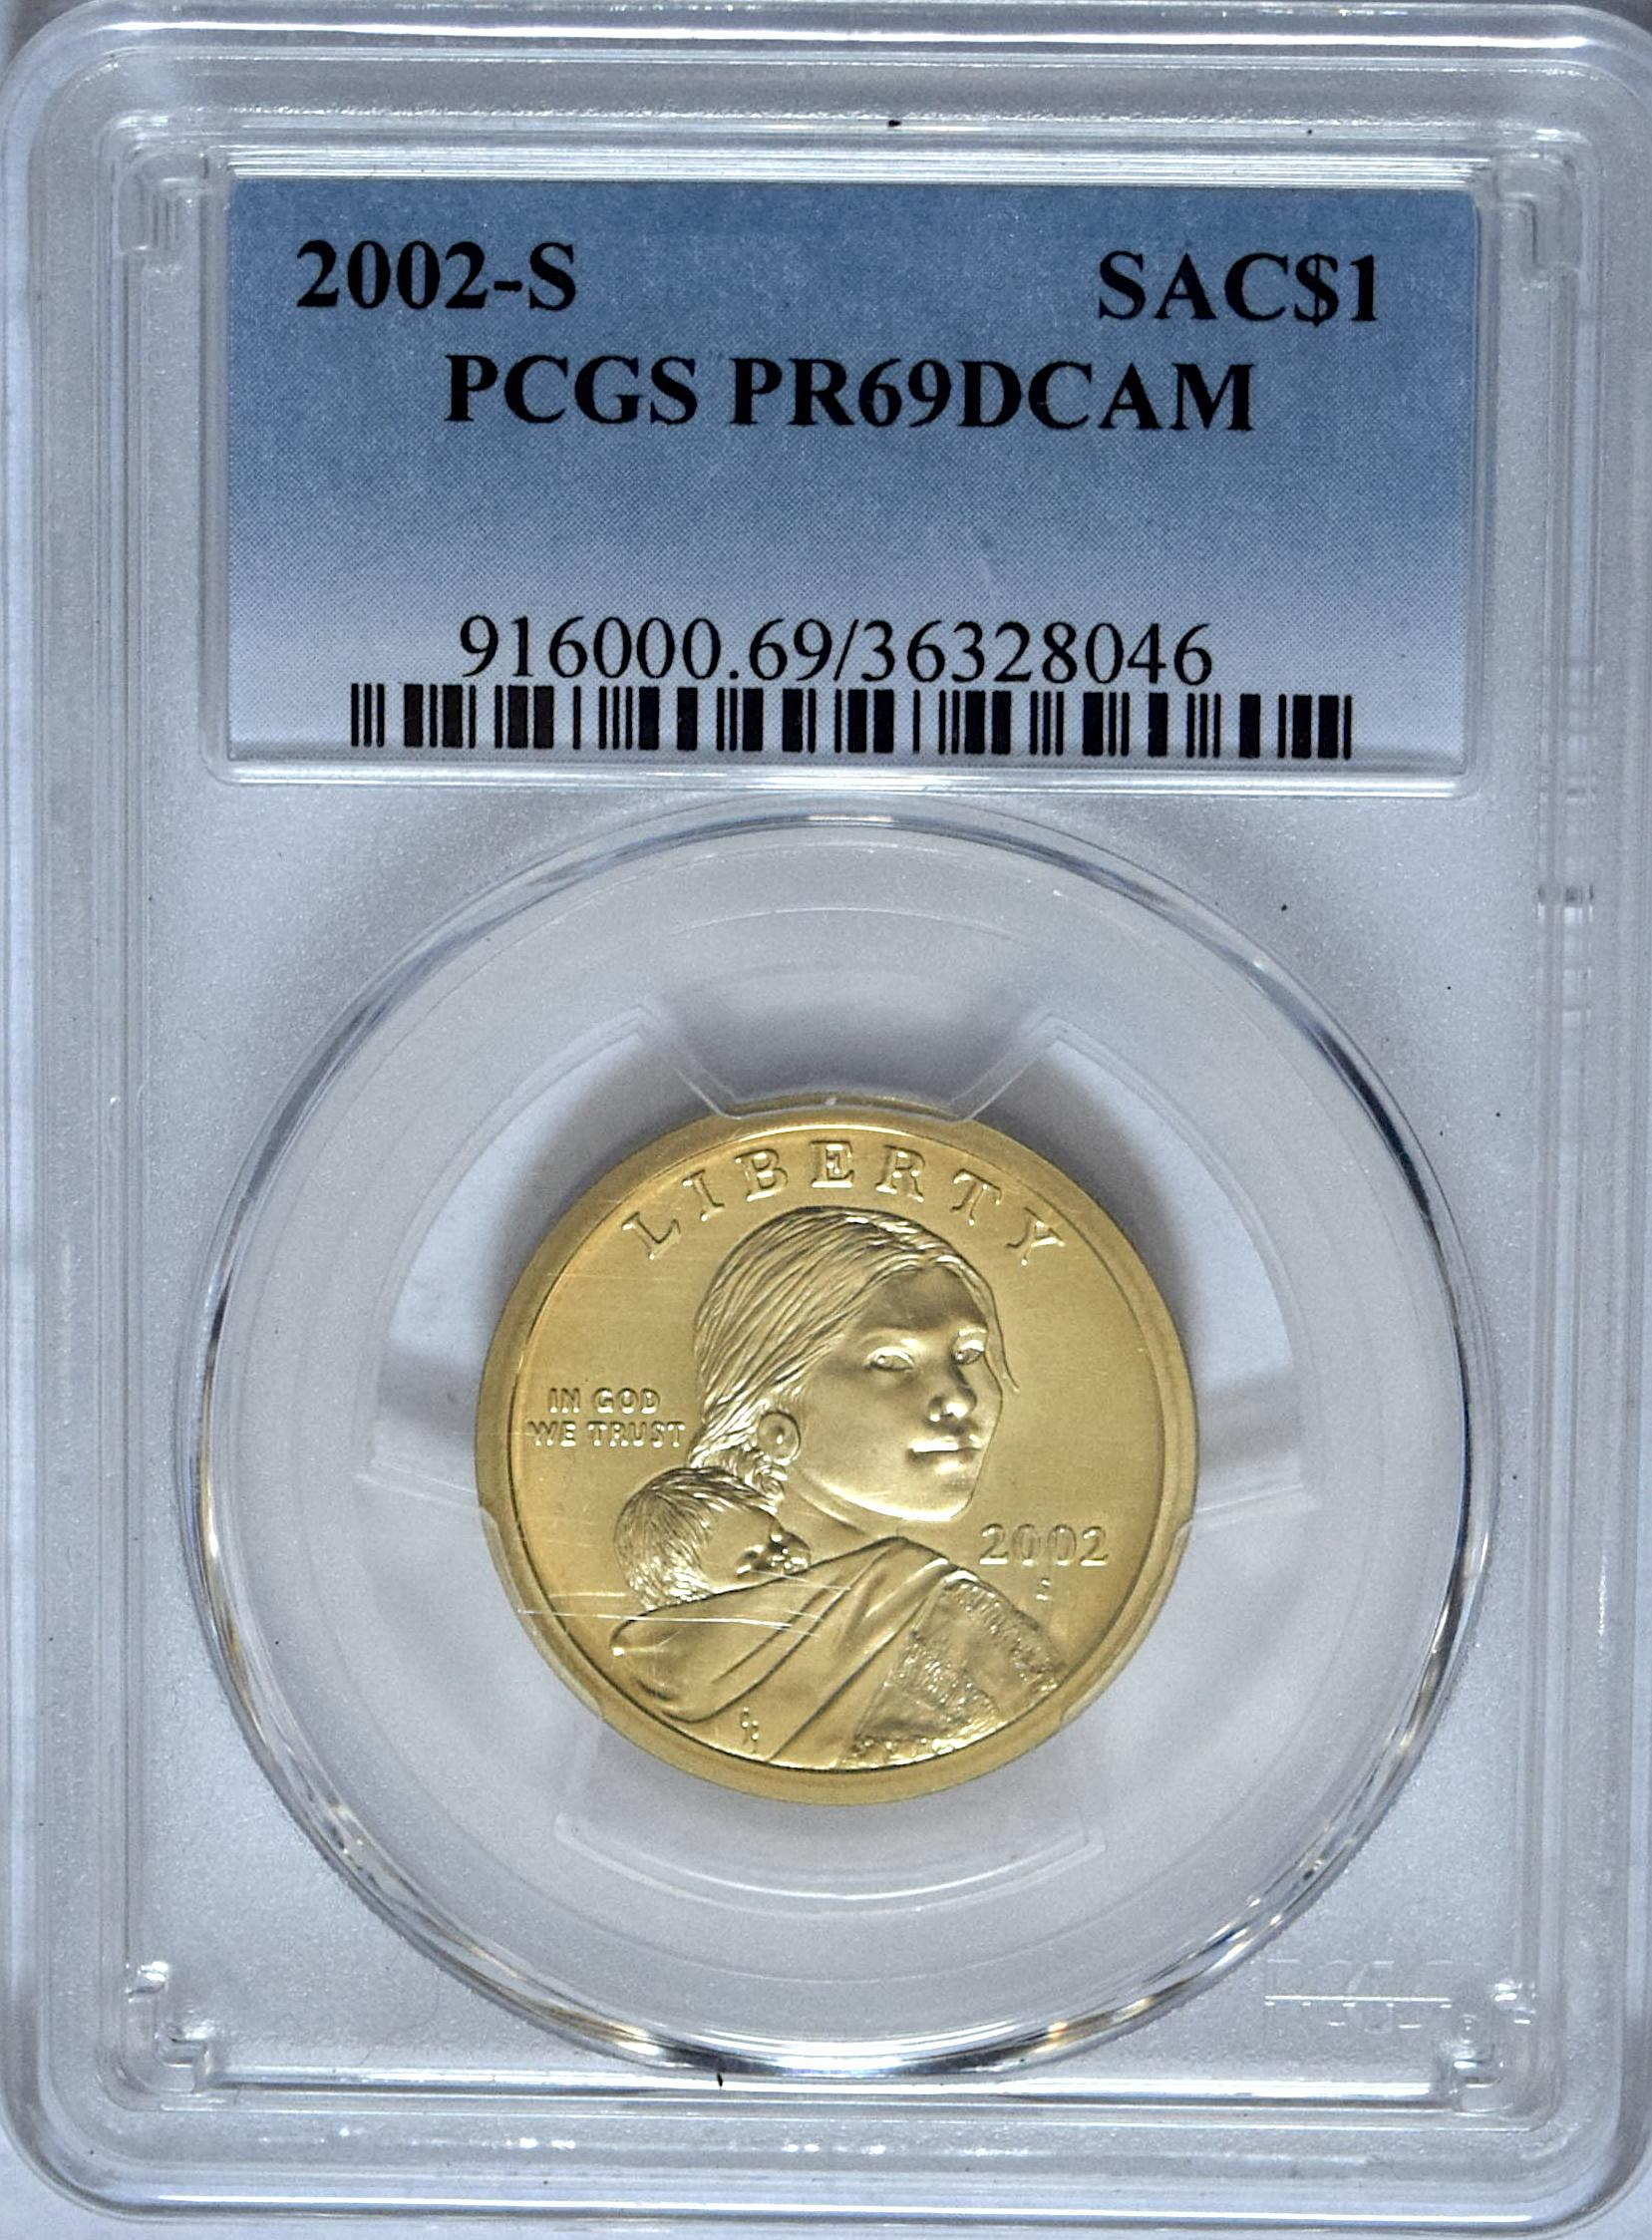 FREE SHIPPING 2002-S PROOF Native American Dollar Coin PCGS PR69DCAM